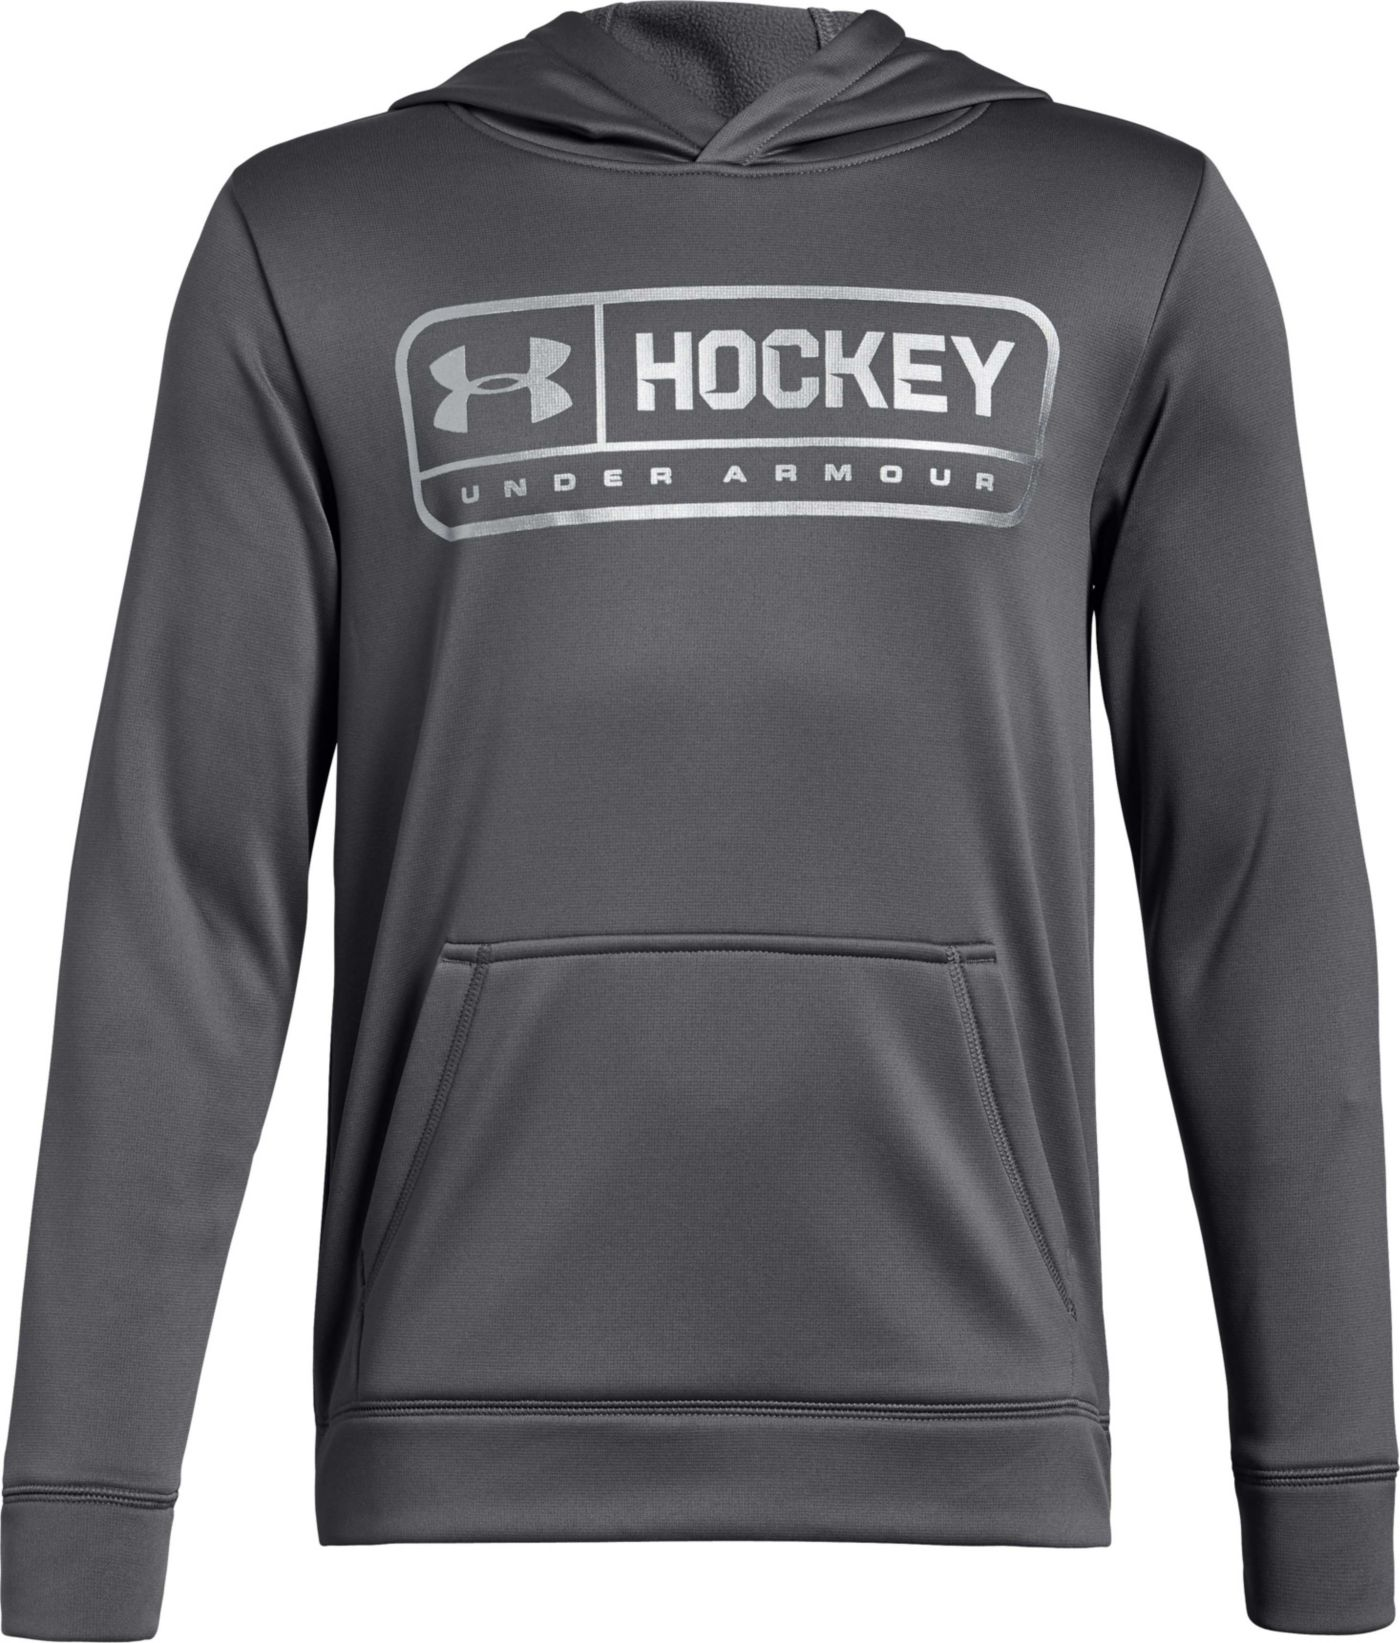 Under Armour Youth Hockey Hoodie